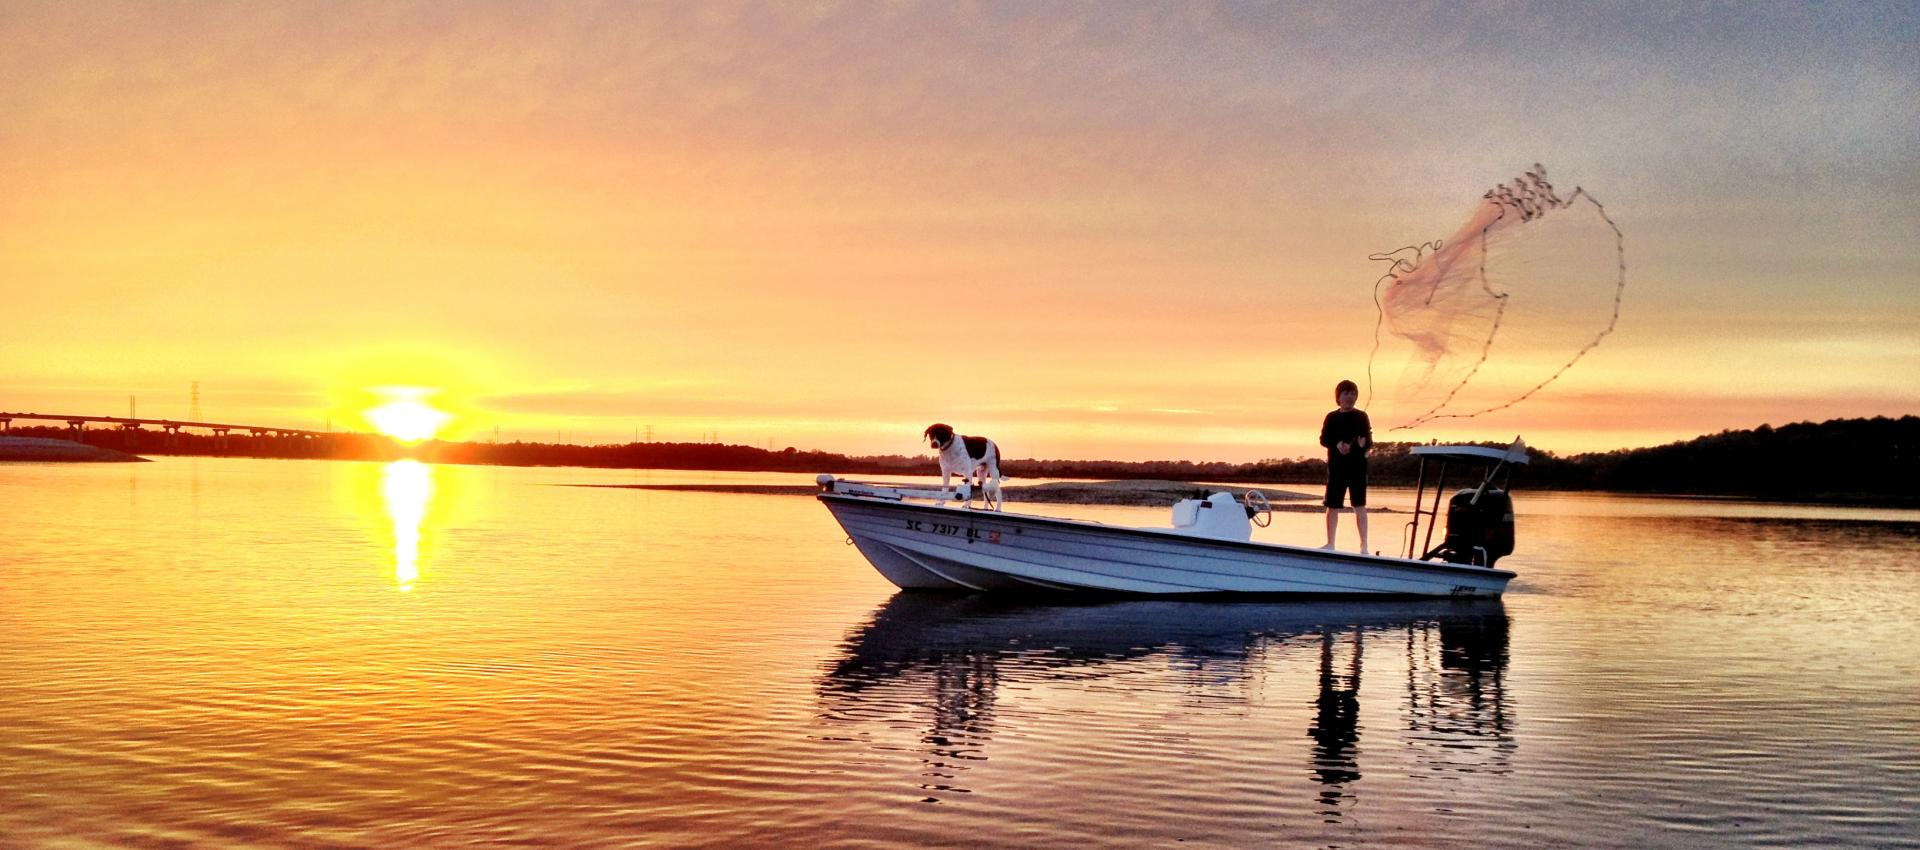 Man fishing at sunset with a dog on Hilton Head Island